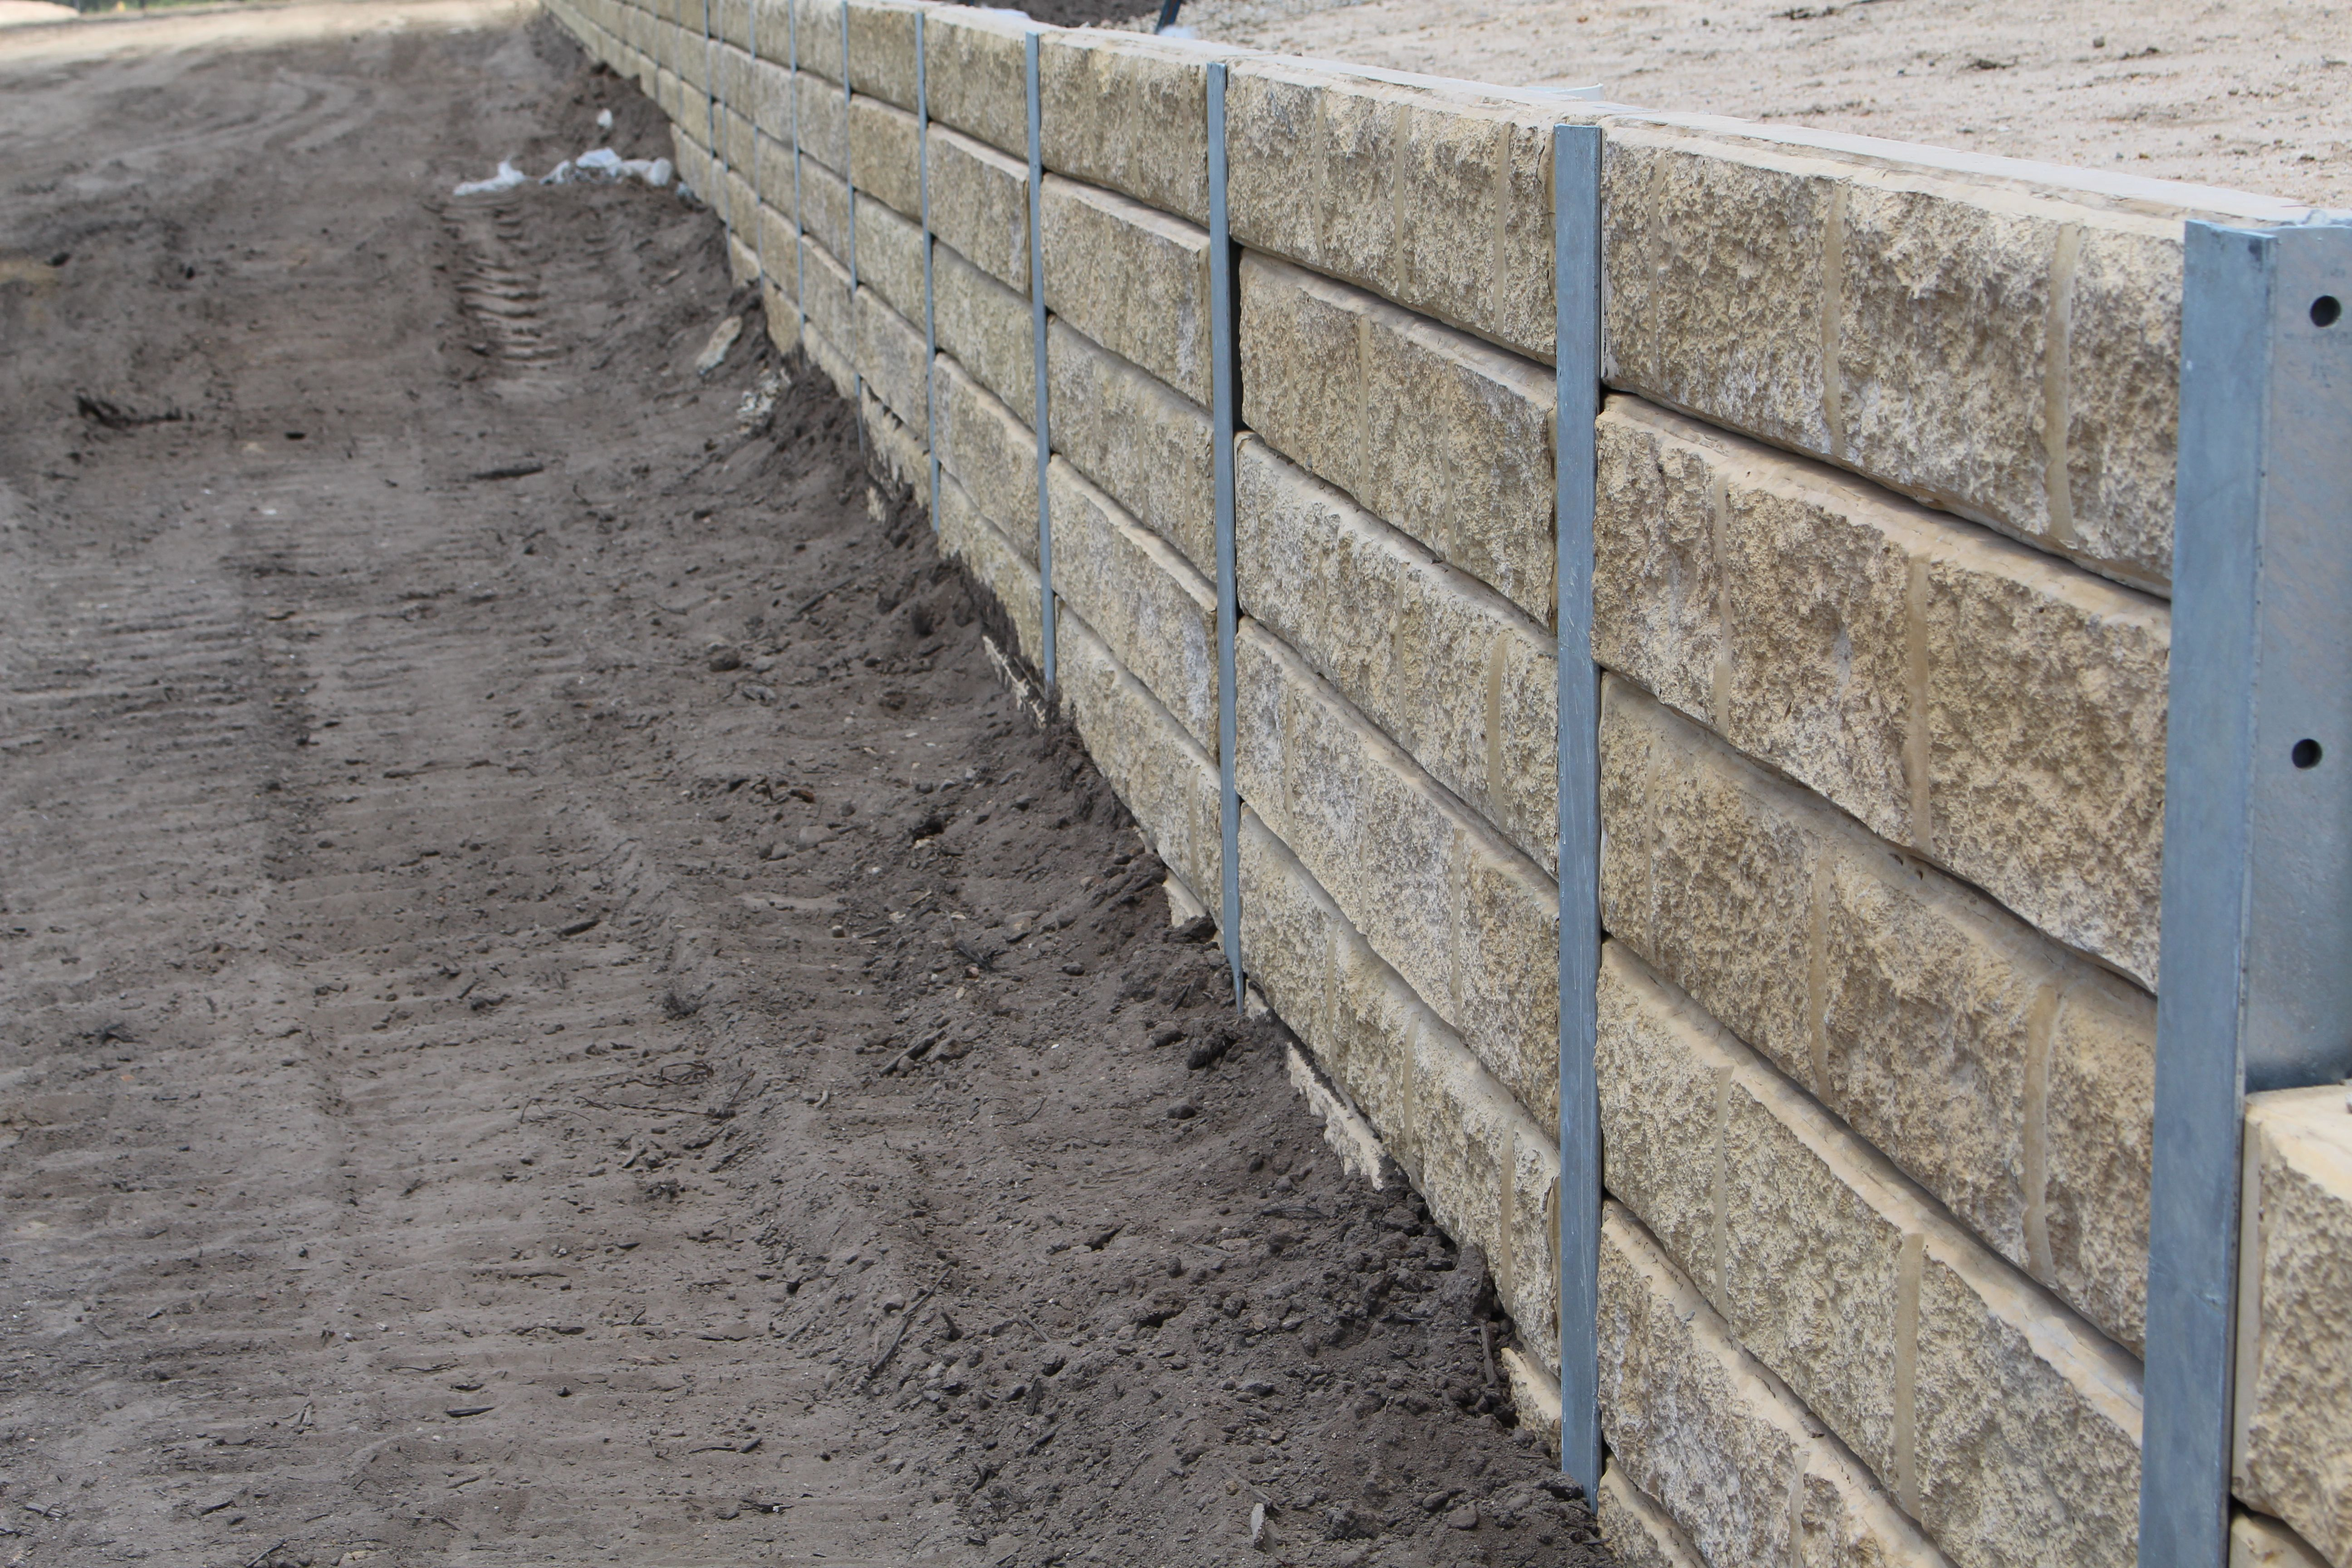 Pioneer Sandstone Effect Concrete Sleeper Retaining Wall By Aussie Concrete Products For Mor Concrete Sleeper Retaining Walls Retaining Wall Concrete Sleepers